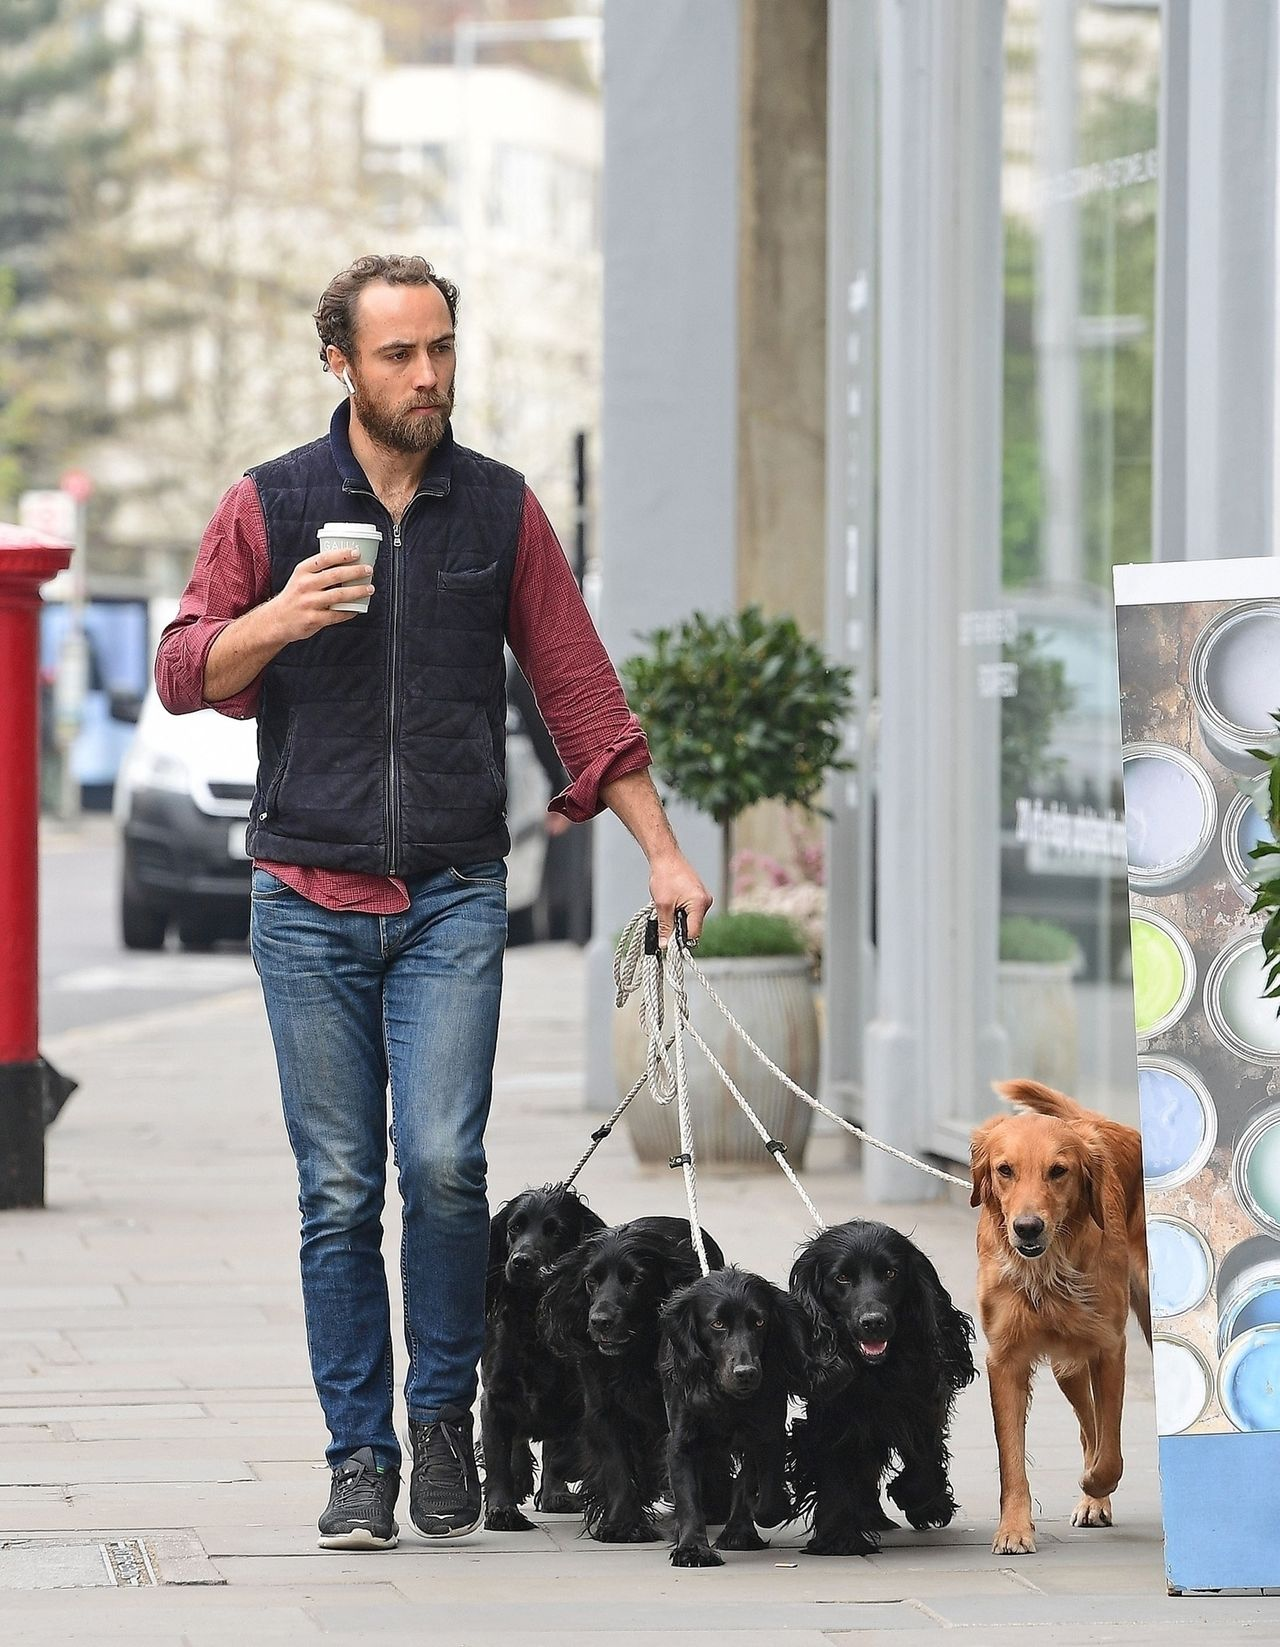 *EXCLUSIVE* Who let the Dogs Out - who, Who, Who - lol - Kate Middleton's Brother James Middleton Keeps busy as he's pictured walking along the Kings Road in Chelsea walking 5 dogs! / BACKGRID , kod: James Middleton